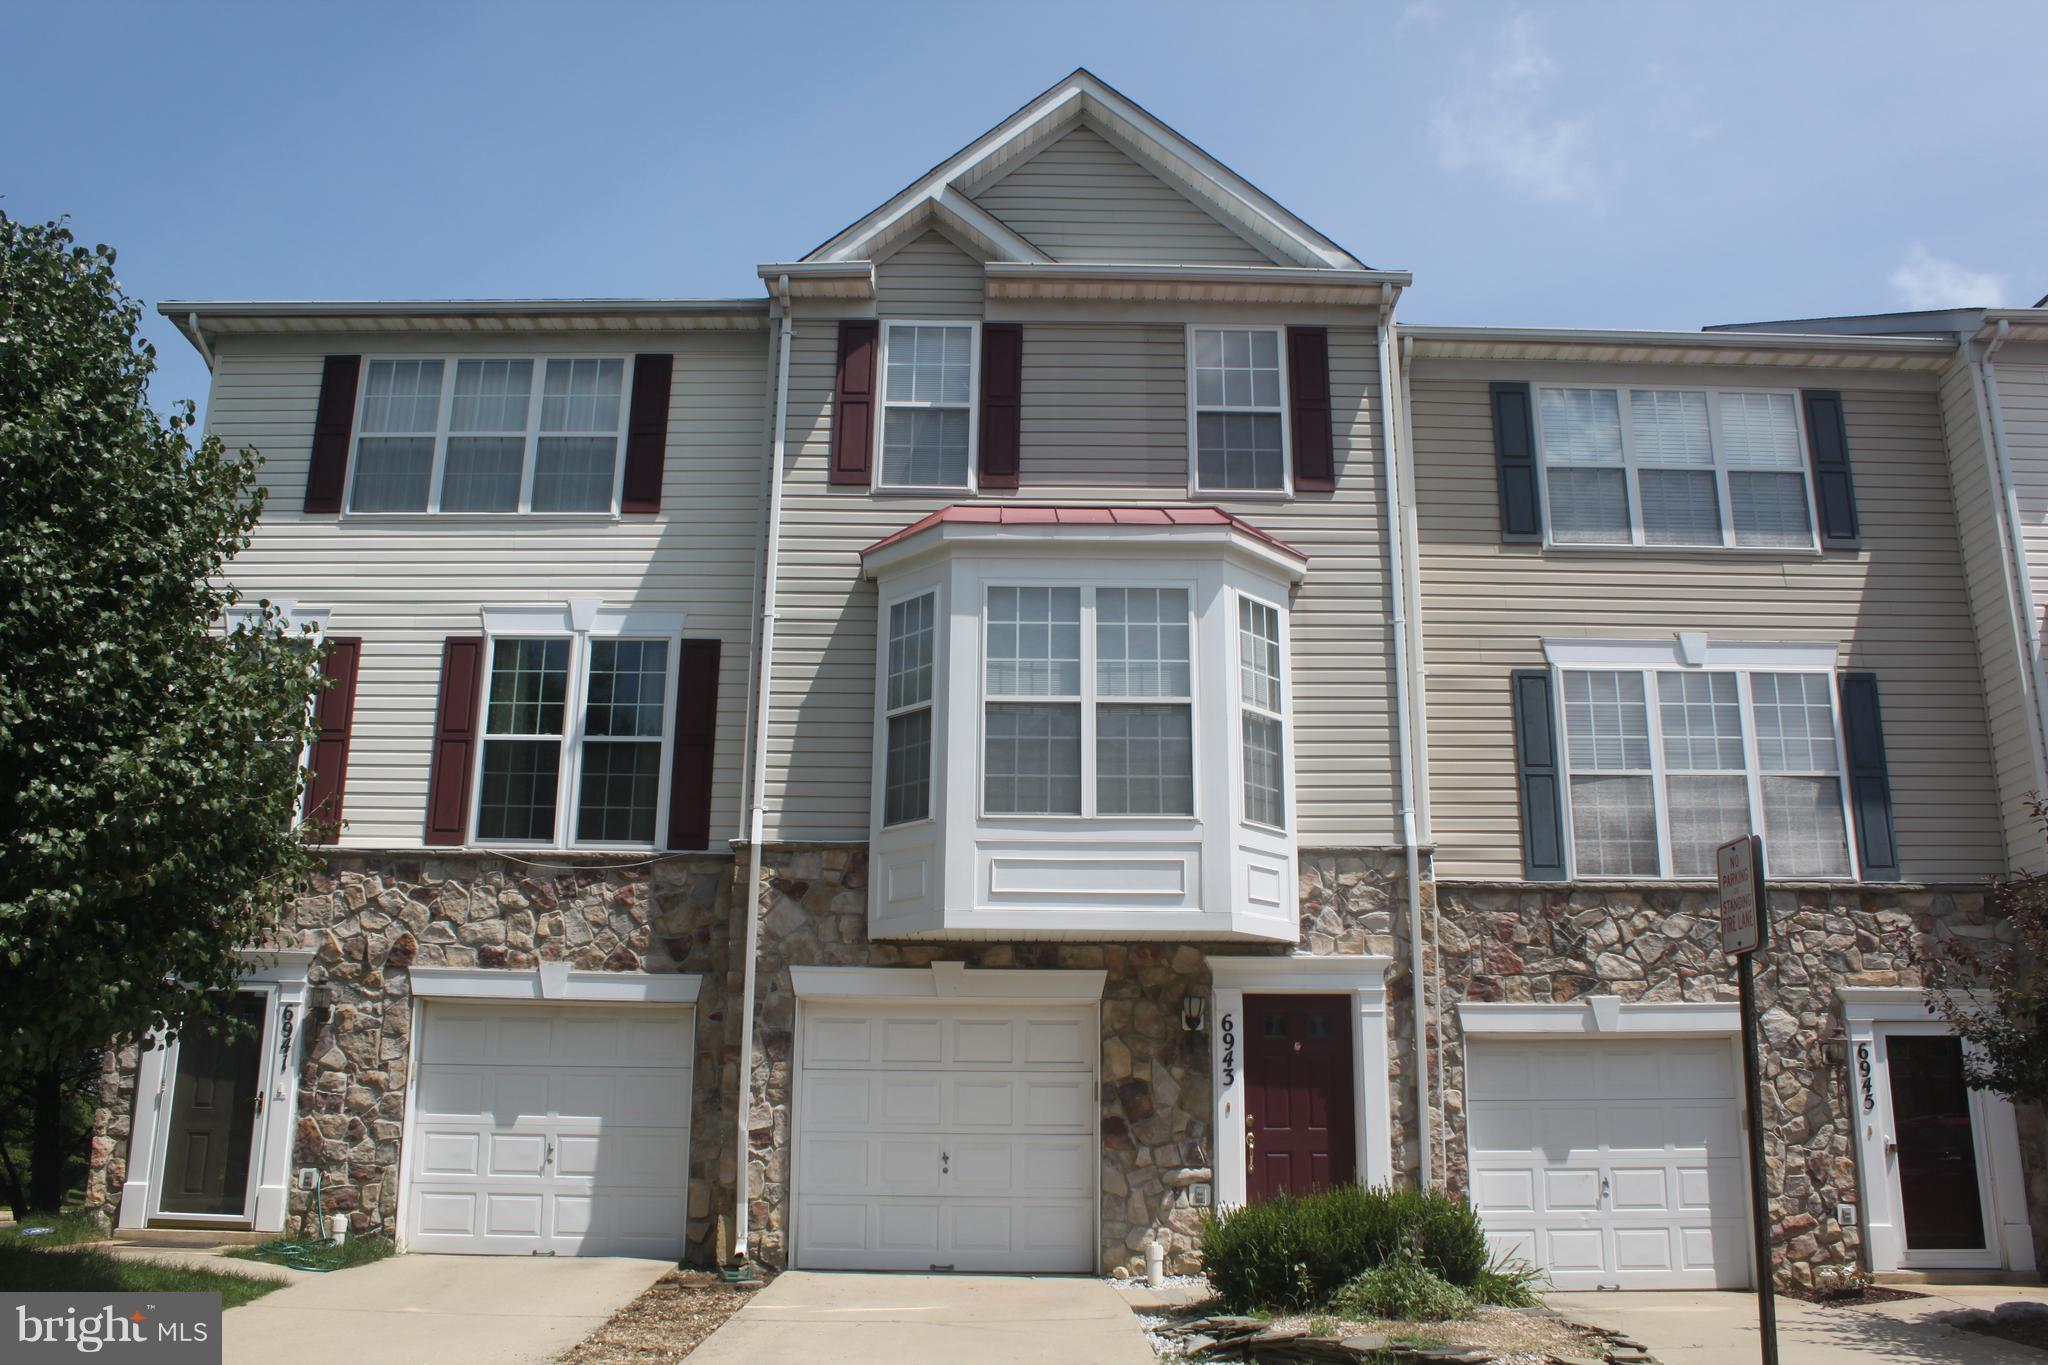 Awesome Location in the Heart of Kingstowne. 3 Bed/3.5 Bath. LR off Kitchen with Breakfast Bar features Fireplace and access to spacious Deck overlooking private Fenced Yard. Separate formal DR highlighted by Bay Window. Upper Level Master Bed with vaulted ceiling,2 double-door closets and own bath; 2nd MasterBR+en-suit bath & convenient Laundry Area.Inviting 3rd BR with Full Bath on Garage Level